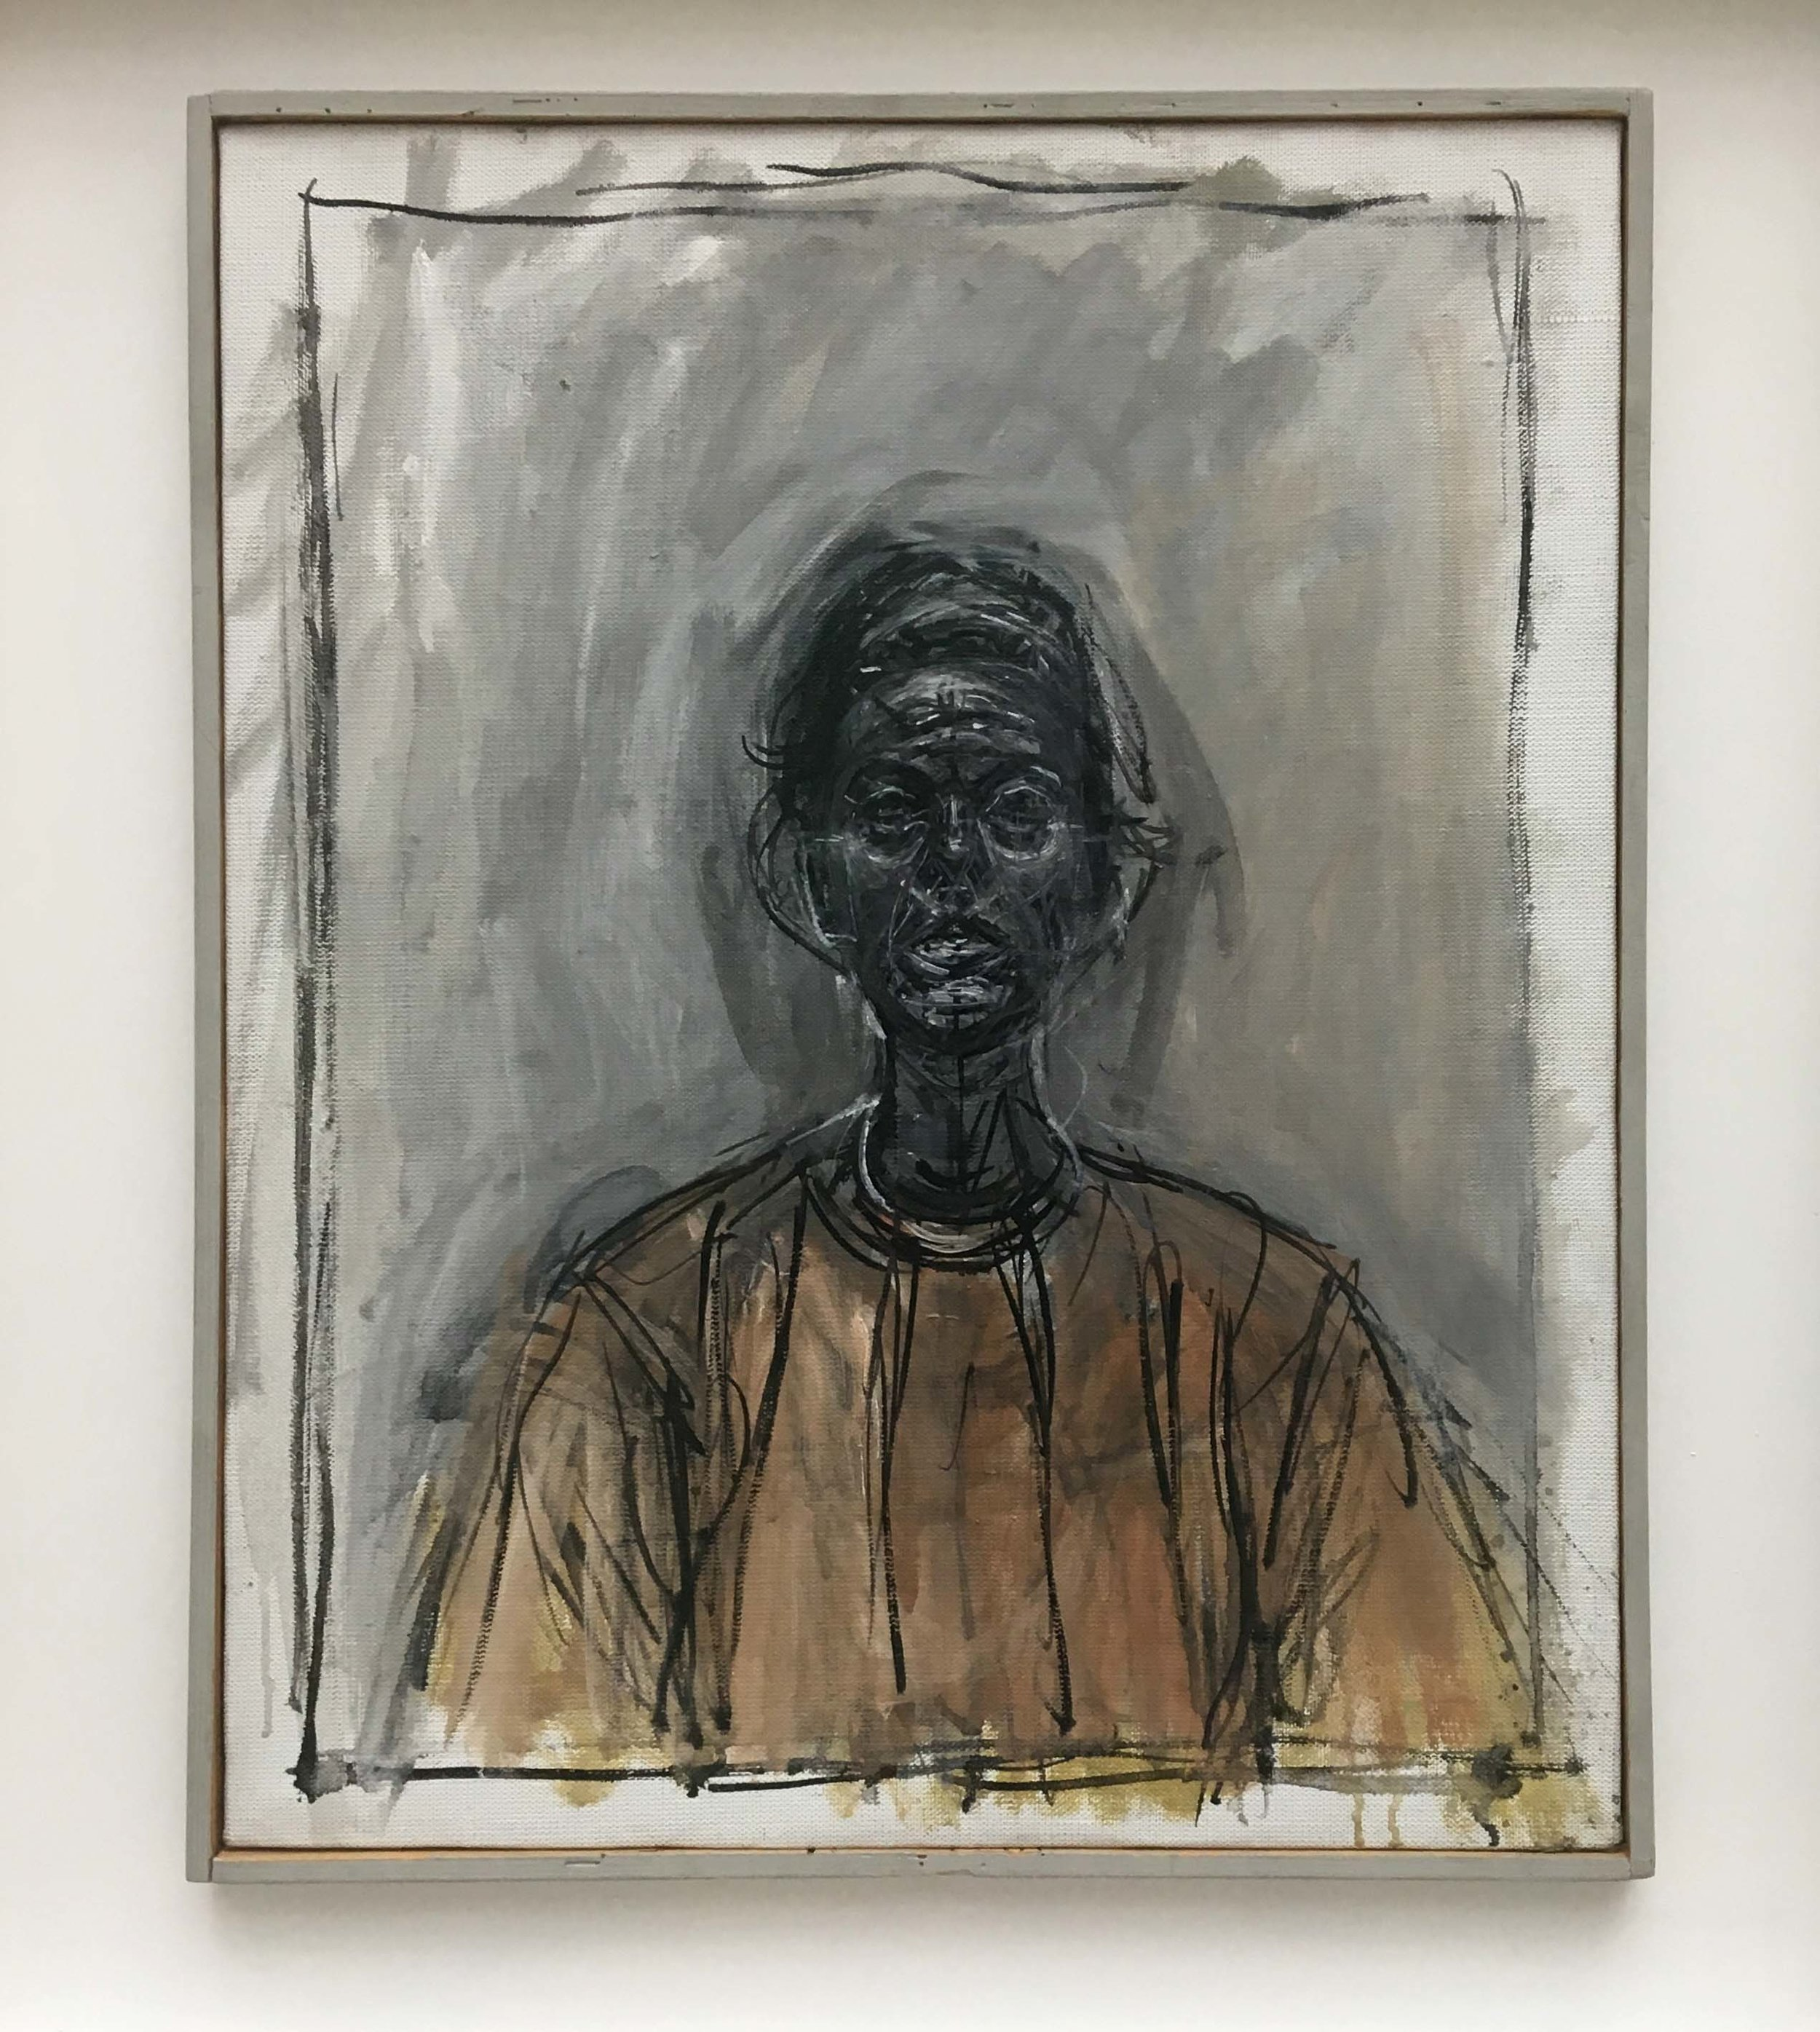 Alberto Giacometti, Portrait of Annette with a yellow blouse, 1964